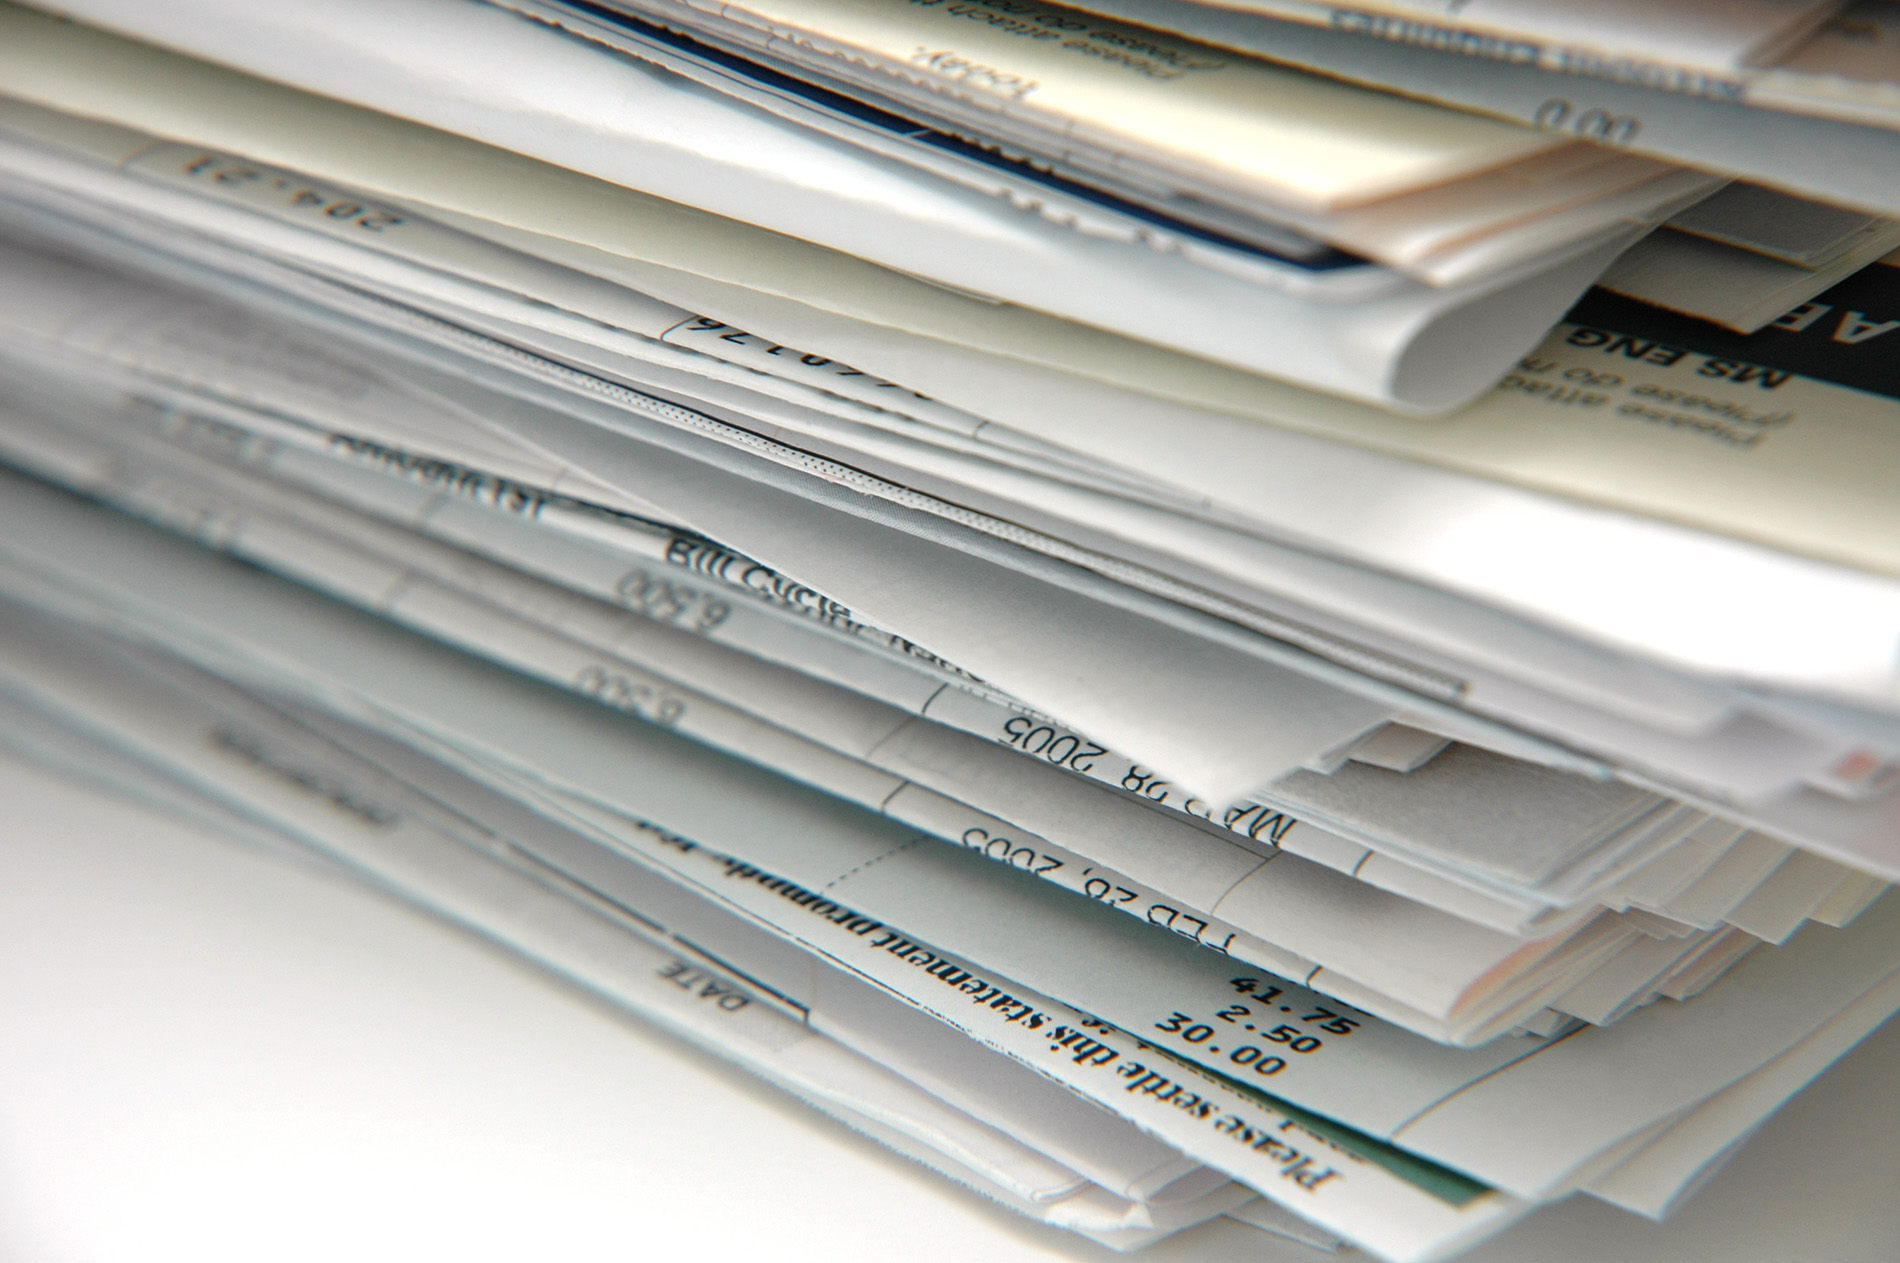 Case Study: The Journey From 180,000 Paper Invoices to a Digital Supply Chain